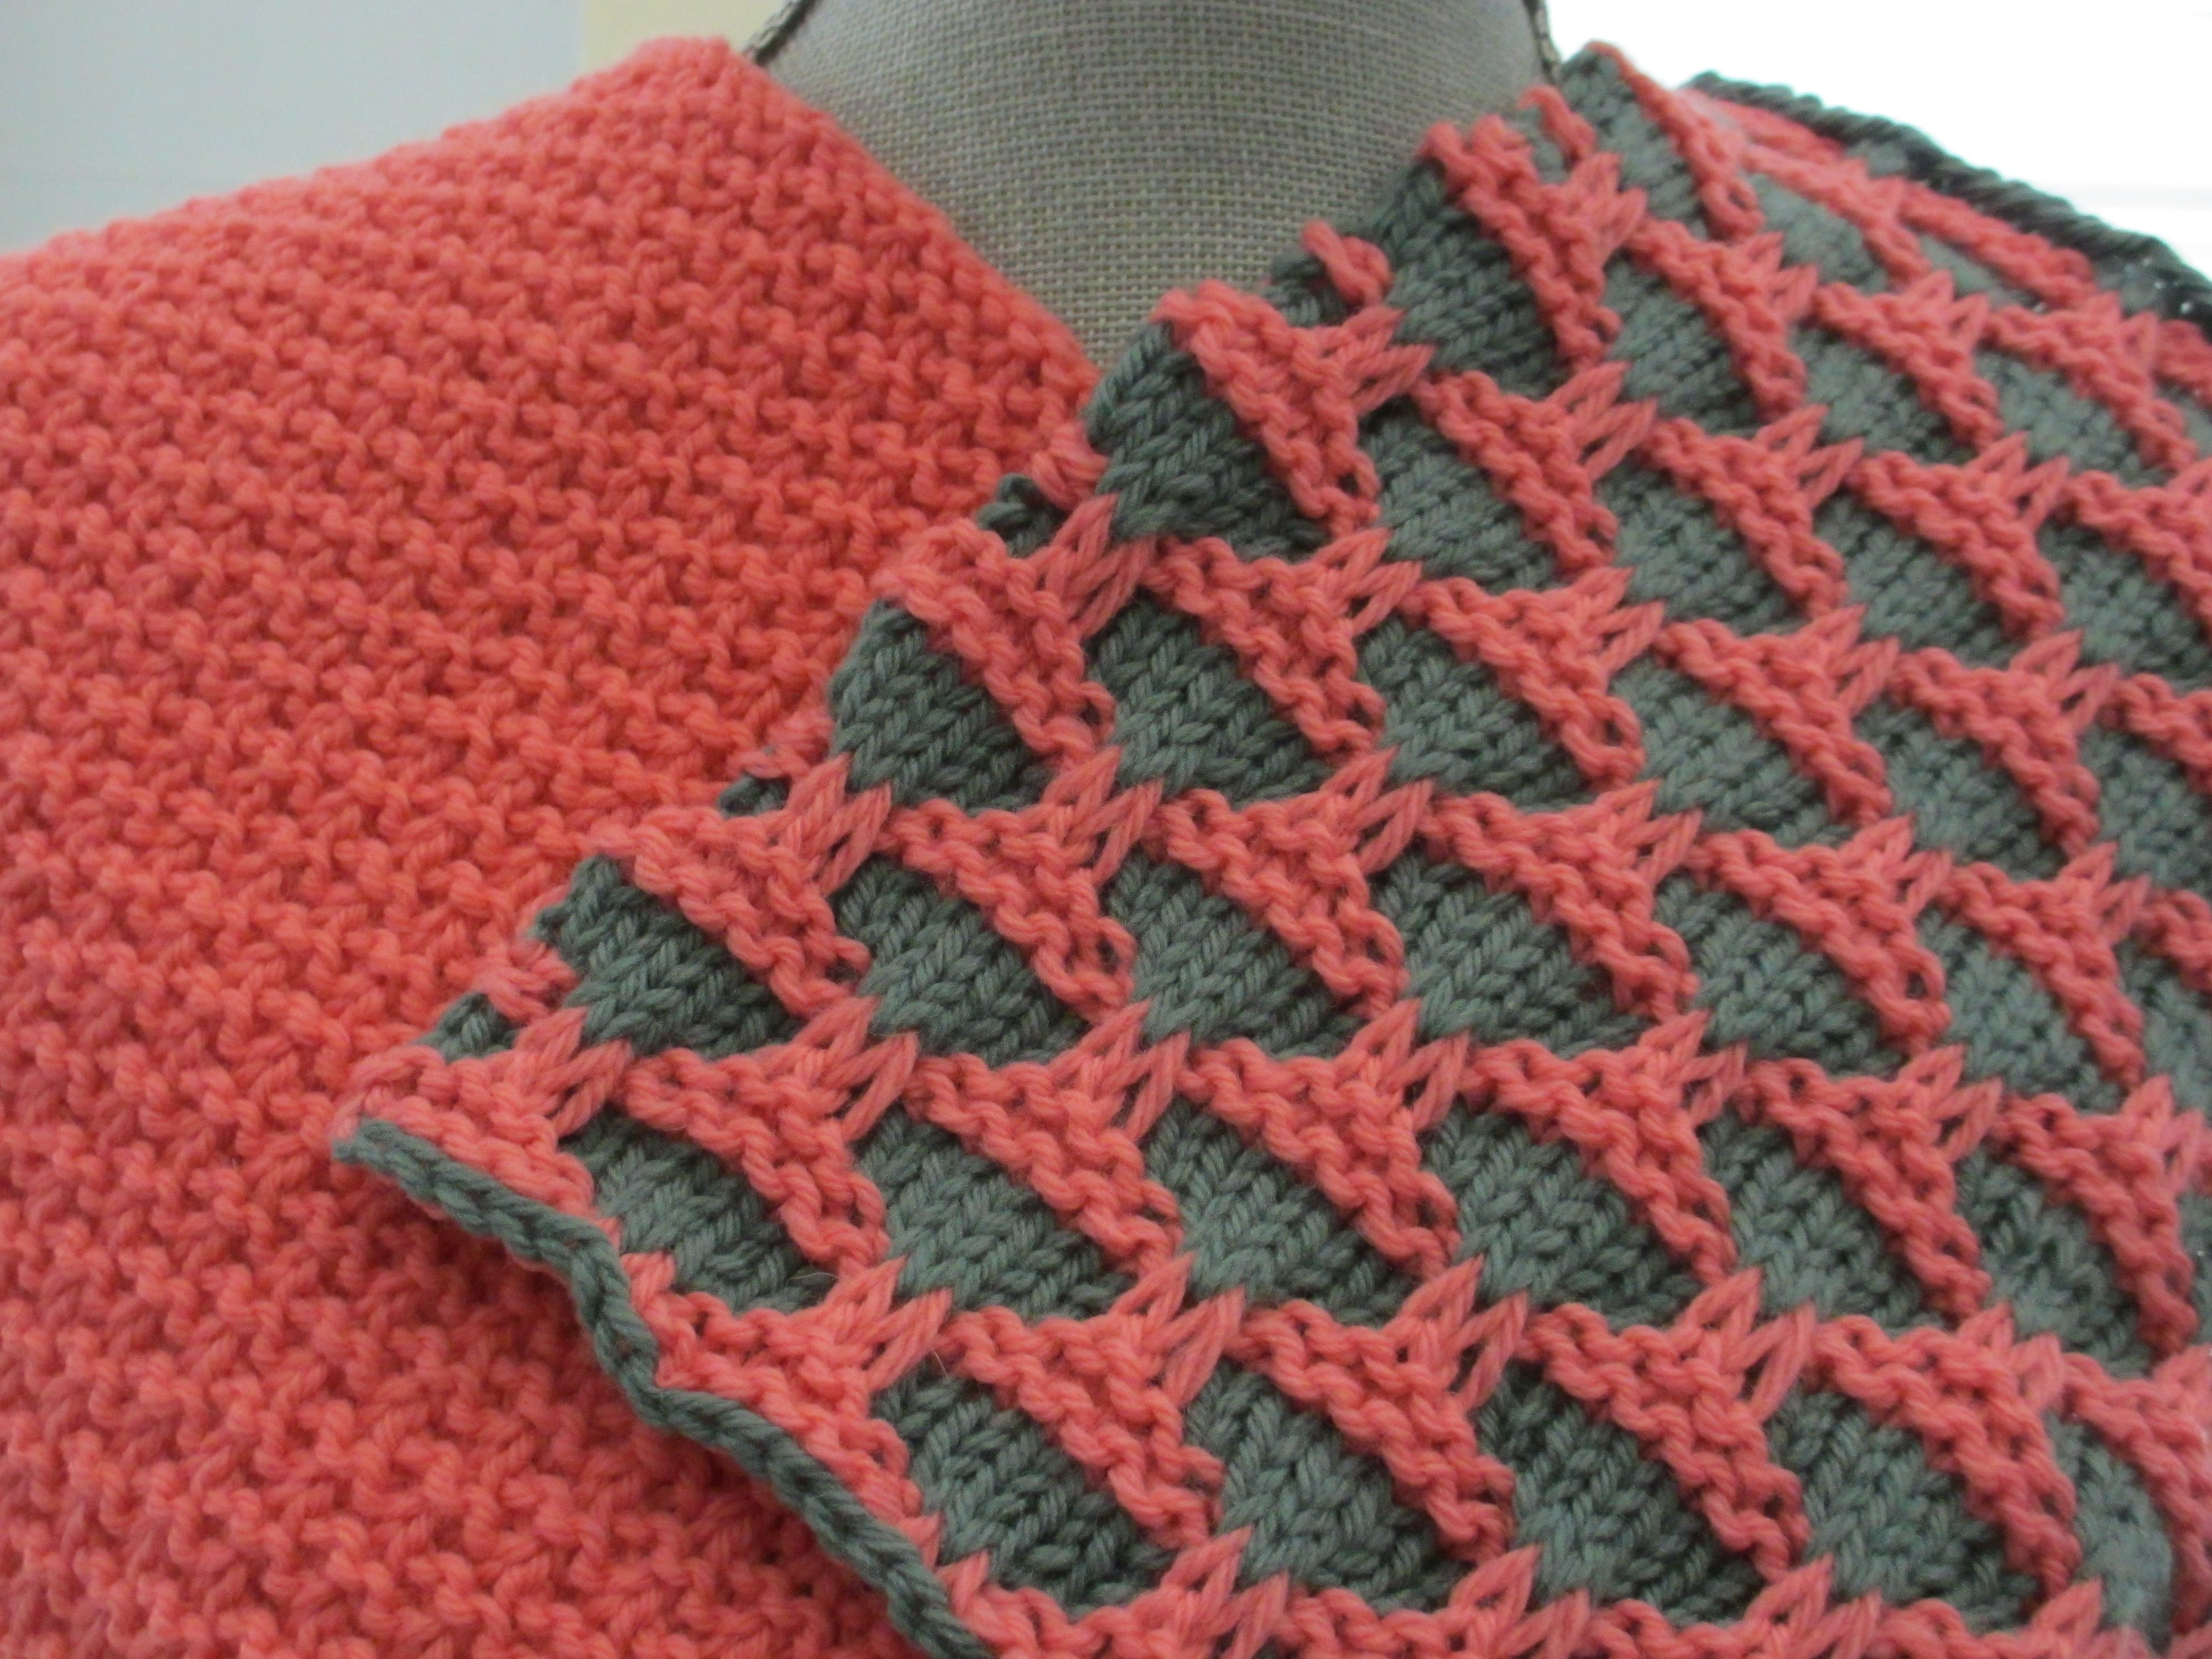 Creating motifs knitting traditional Fair Isle or Intarsia are not ...